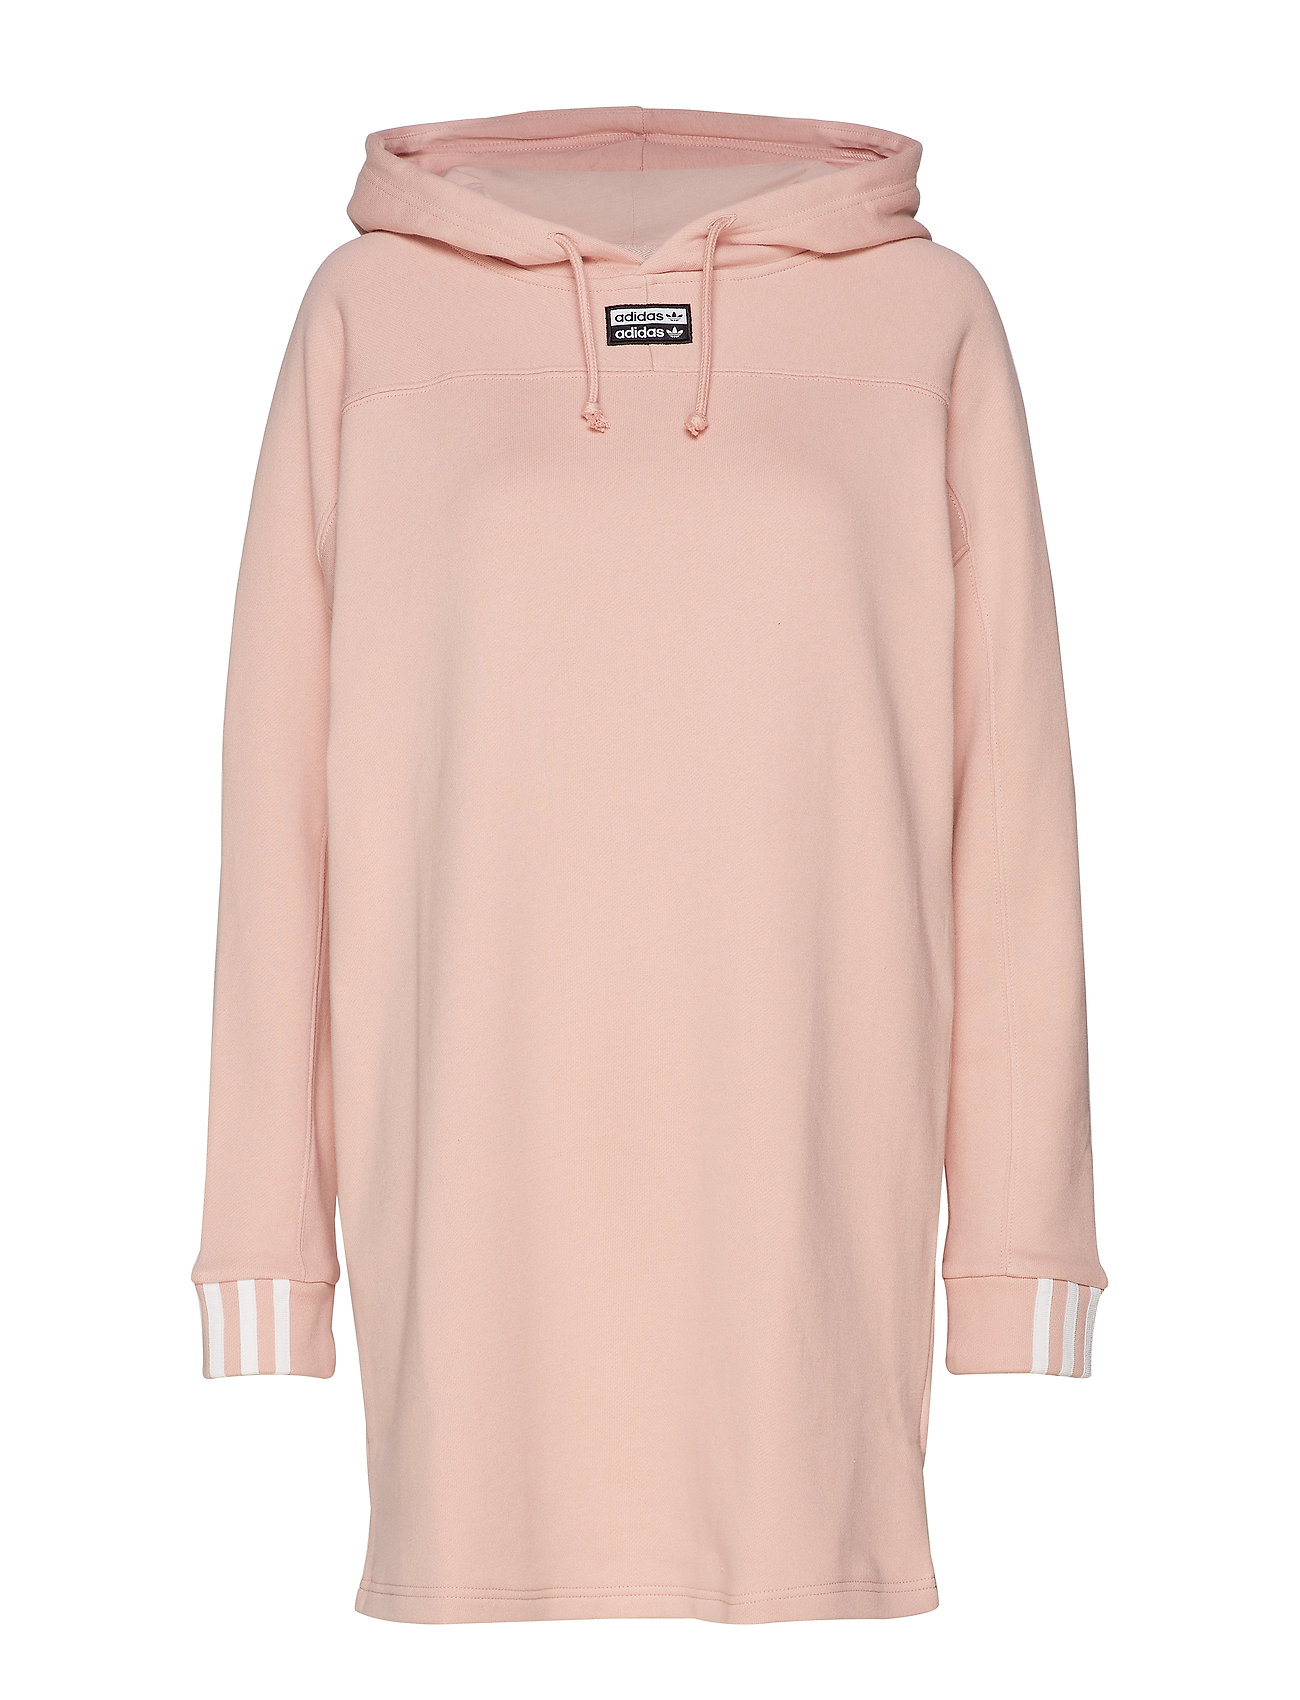 adidas Originals HOODED DRESS - PNKSPI